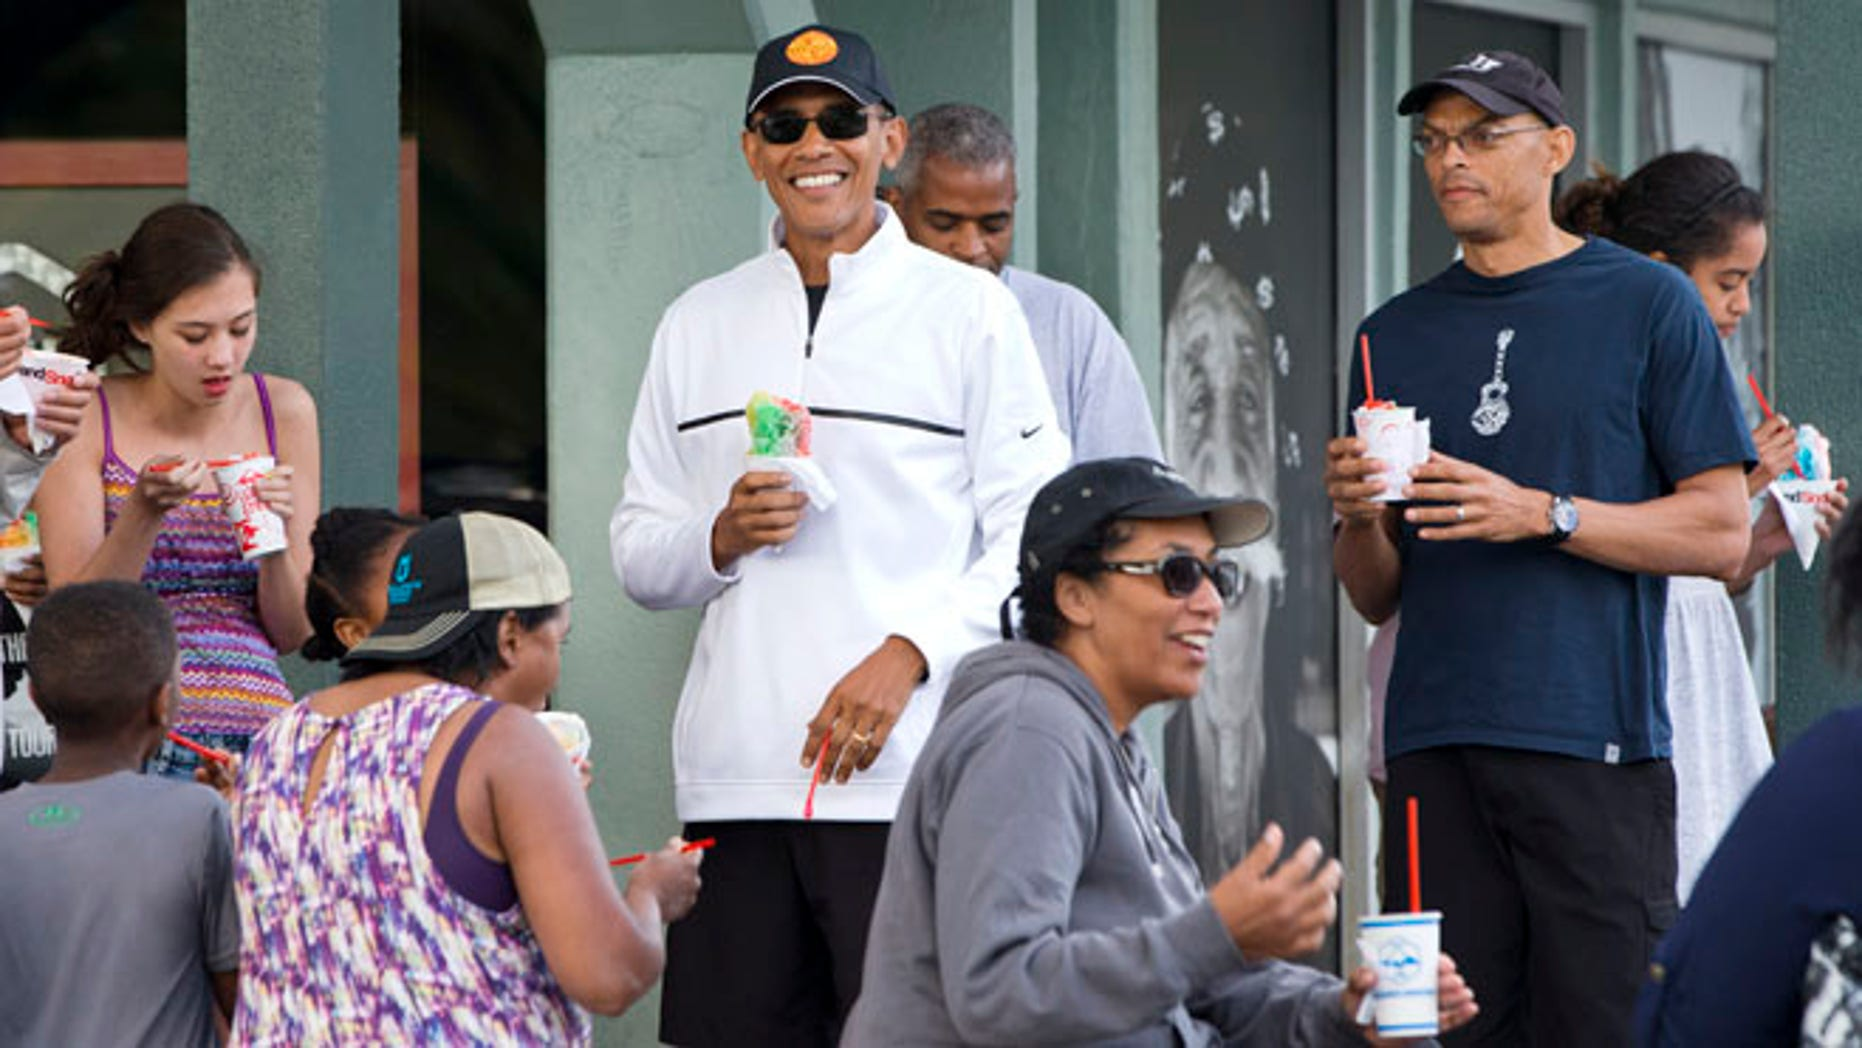 Jan. 1, 2015: President Obama smiles as he eats shave ice with friends and his daughters in Kailua, Hawaii.